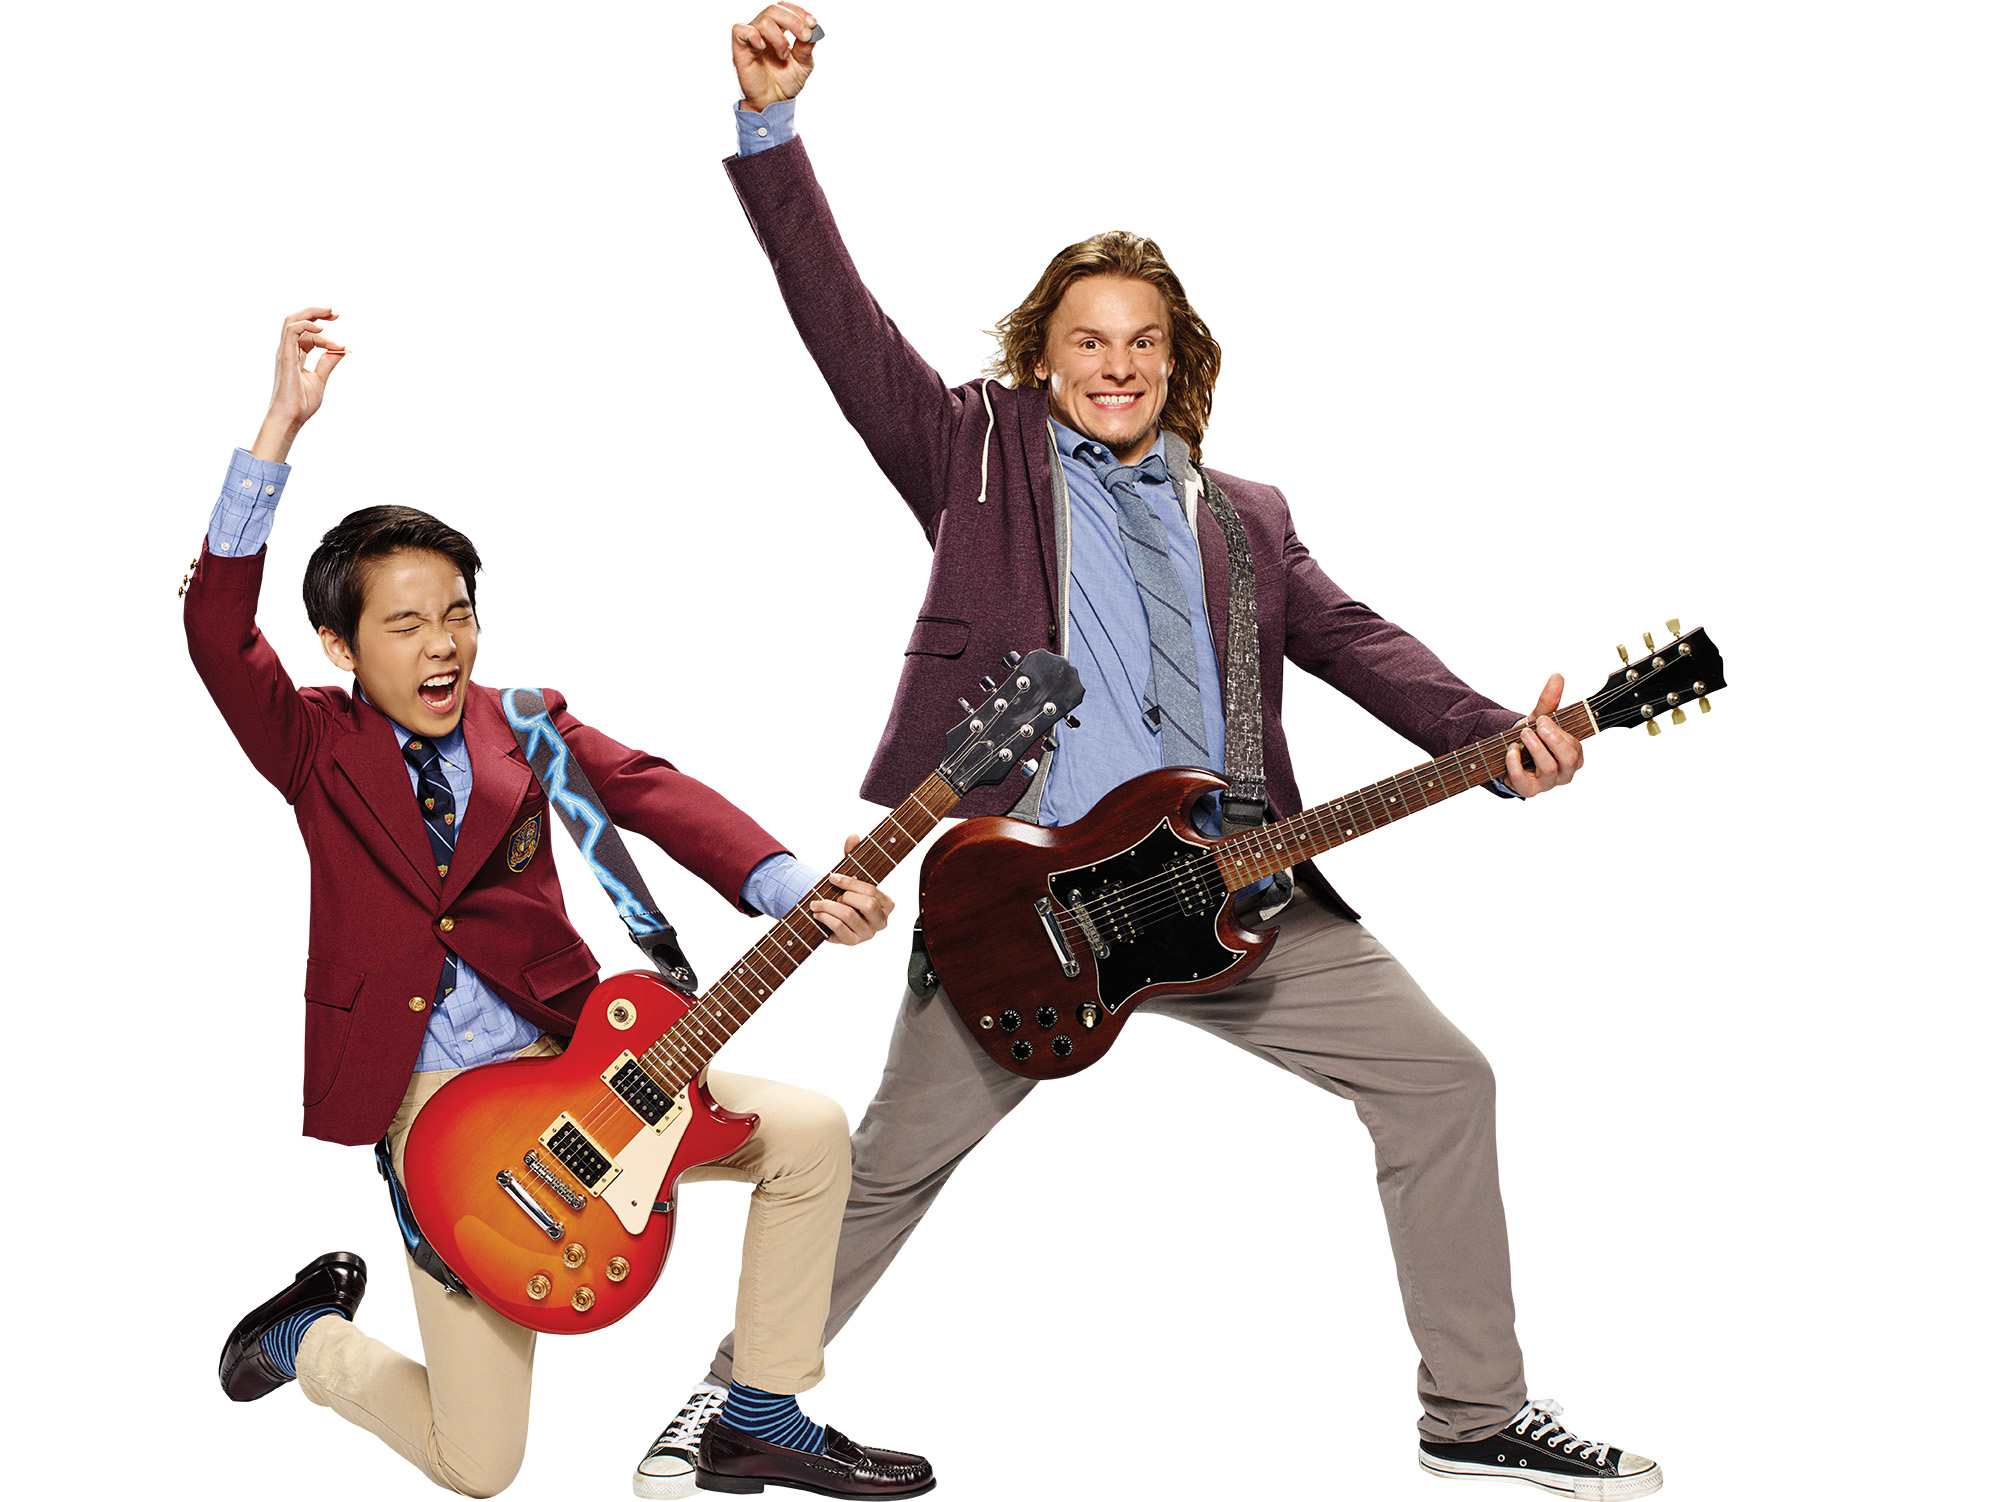 SCHOOL OF ROCK SEASON 1 GALLERY